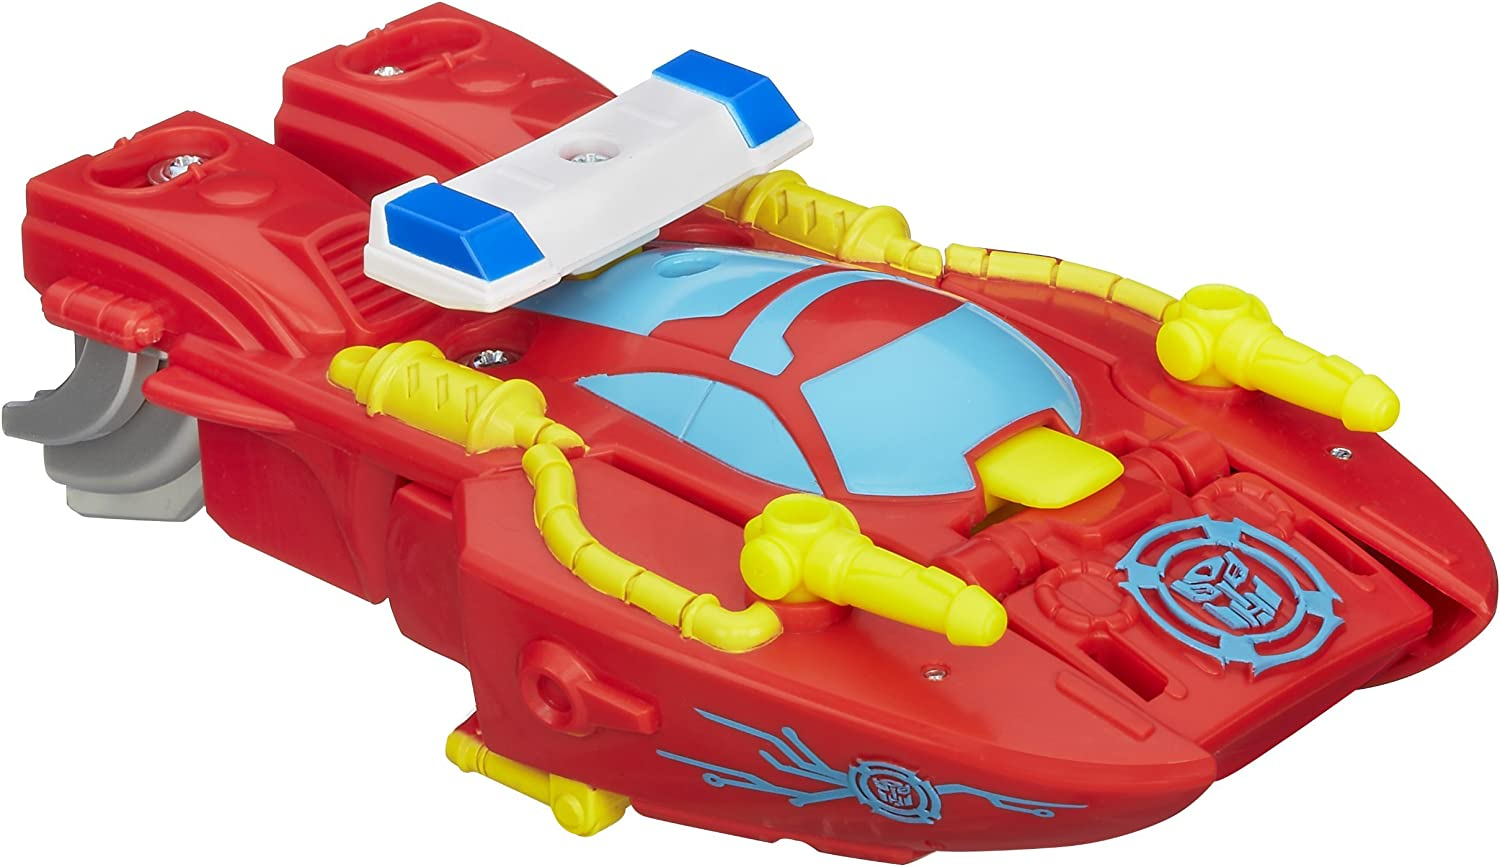 Playskool Transformers Rescue Bots Heatwave [UK Import]